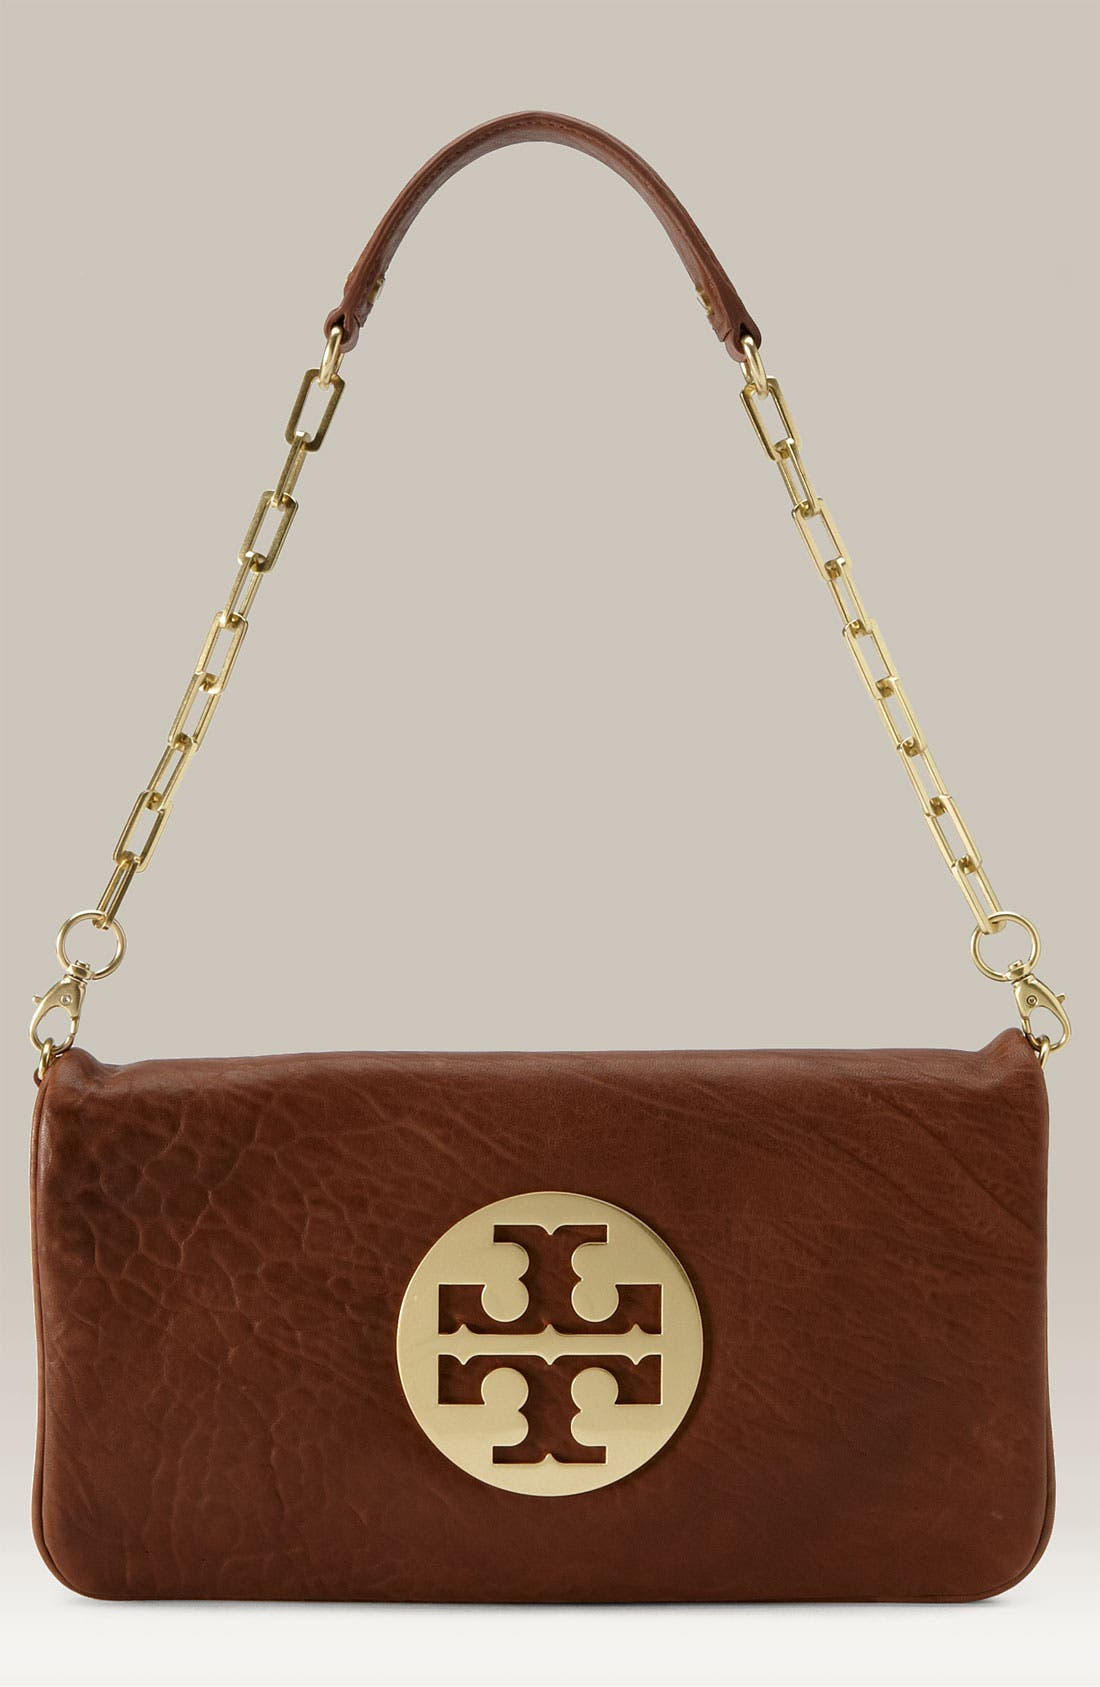 Main Image - Tory Burch 'Reva' Pebbled Leather Clutch